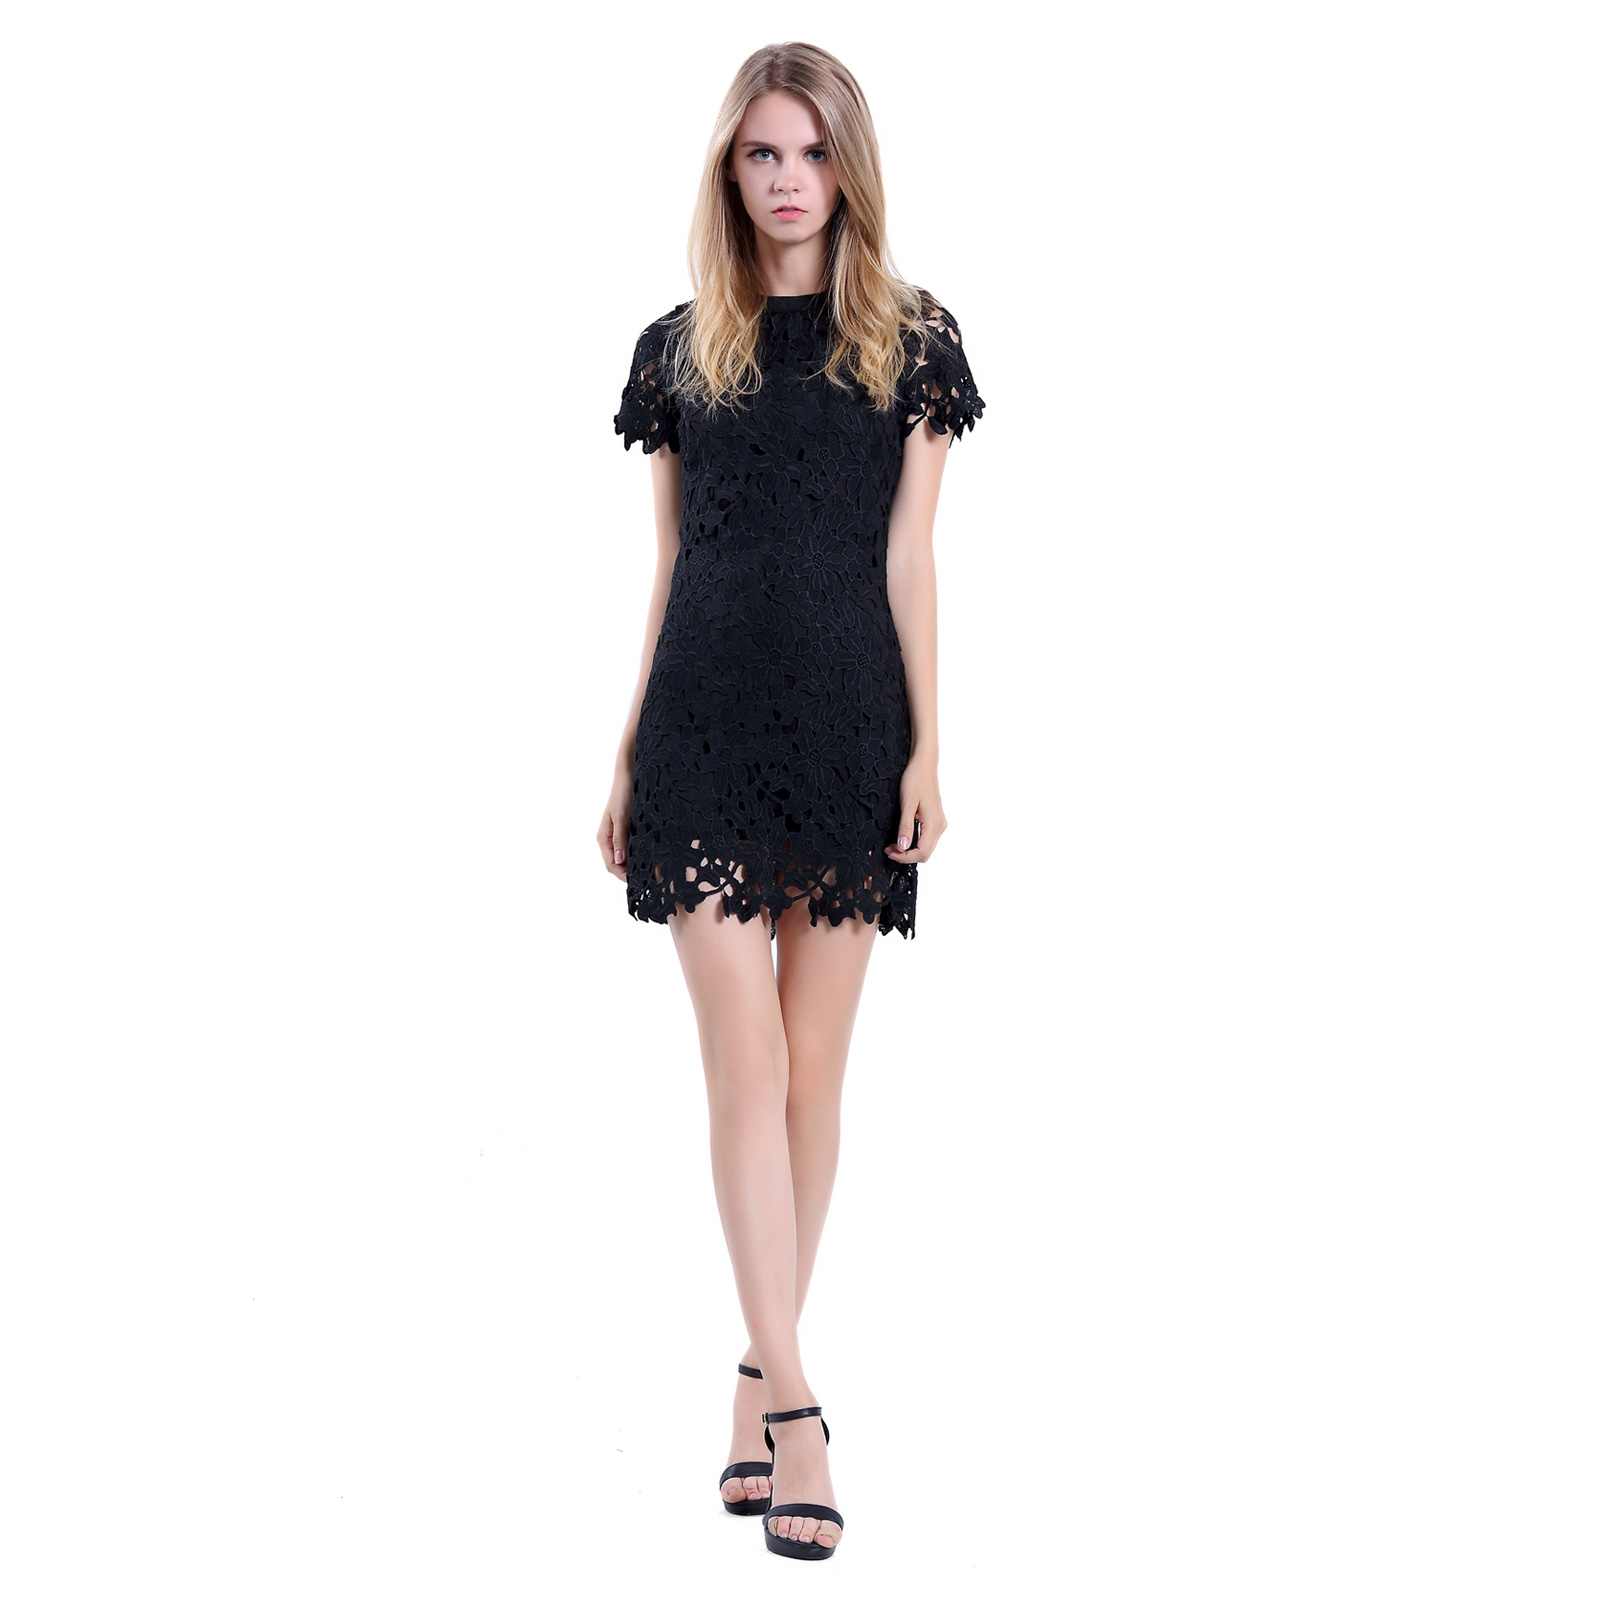 detailed pictures new high quality promo codes Women Sheath Cut Short Sleeve Black Fringe Lace Short Party Cocktail Dress